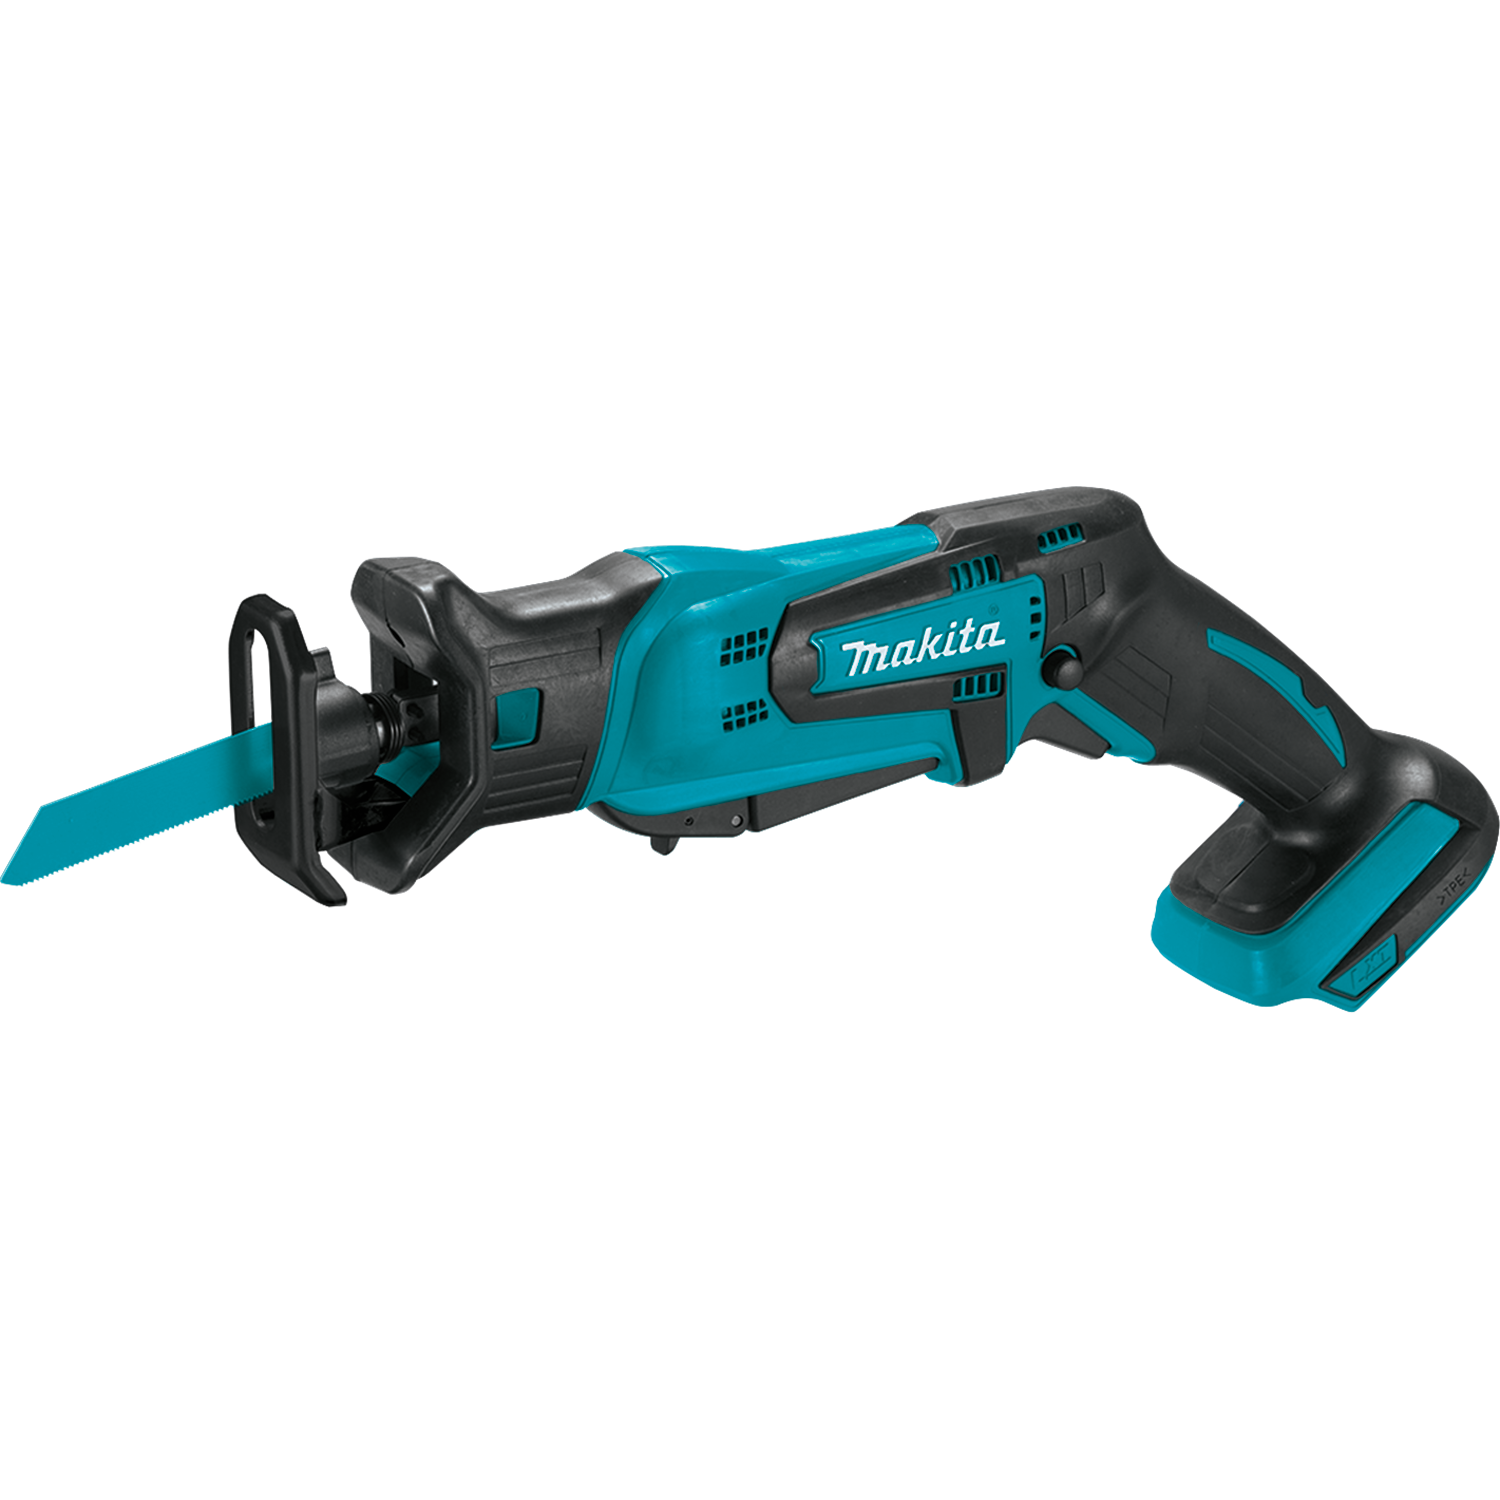 Makita usa product details xrj01z xrj01z greentooth Gallery